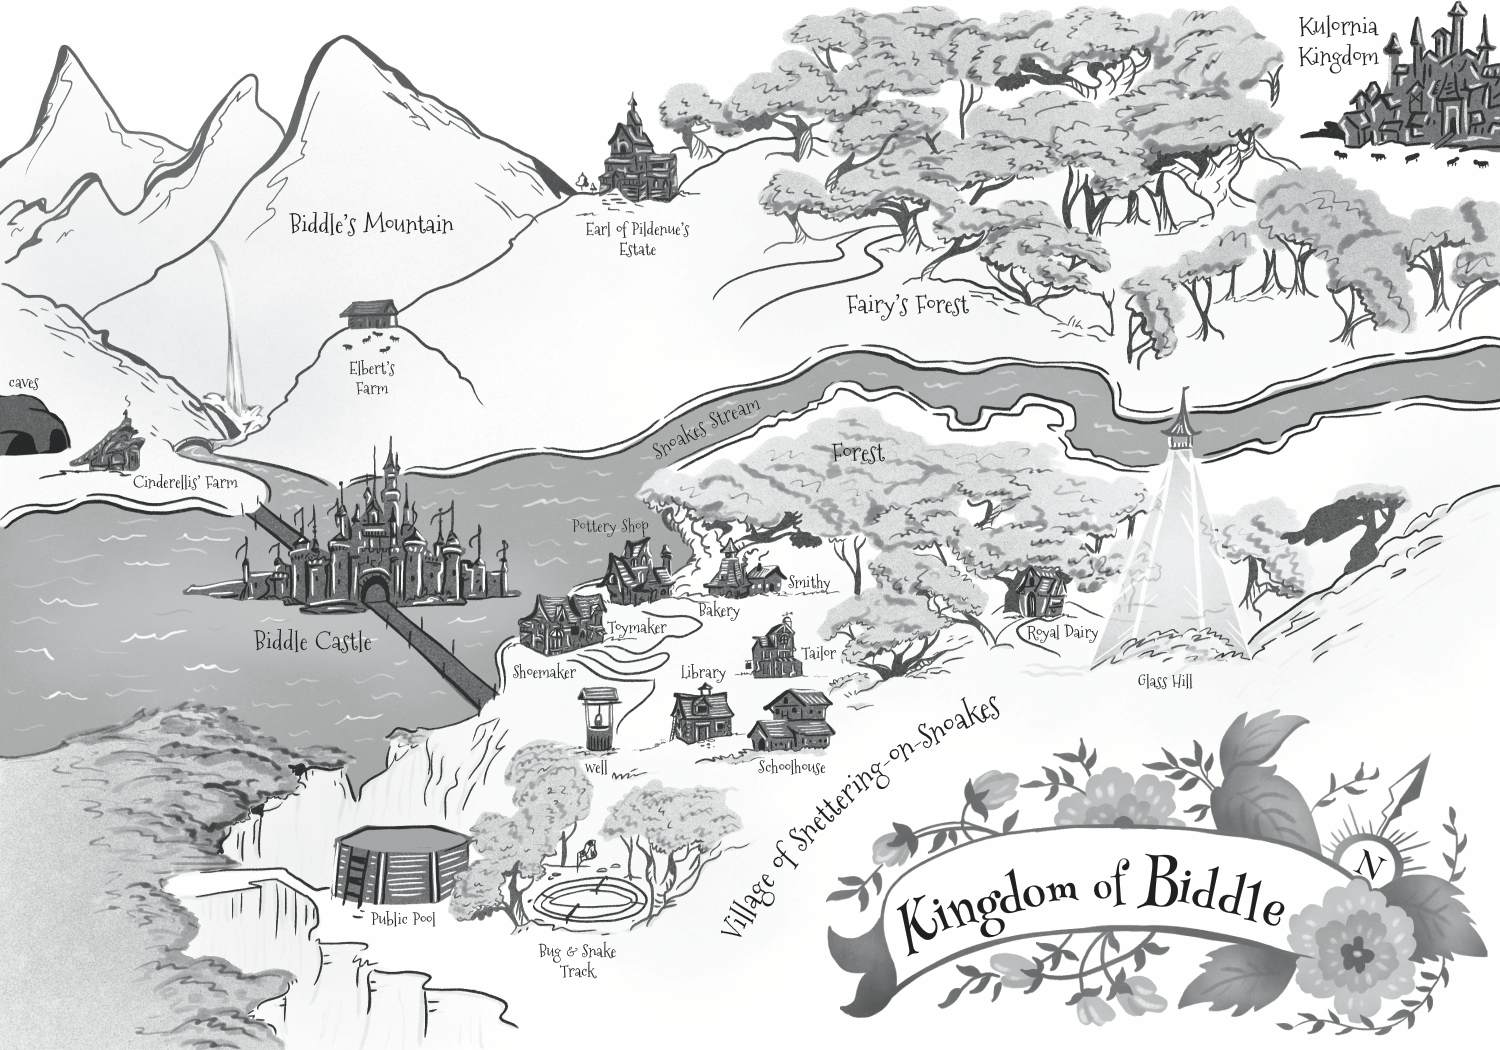 """This map of the Kingdom of Biddle is the environment in which all the stories take place. I had fun trying to """"map out"""" all the locations in the stories."""